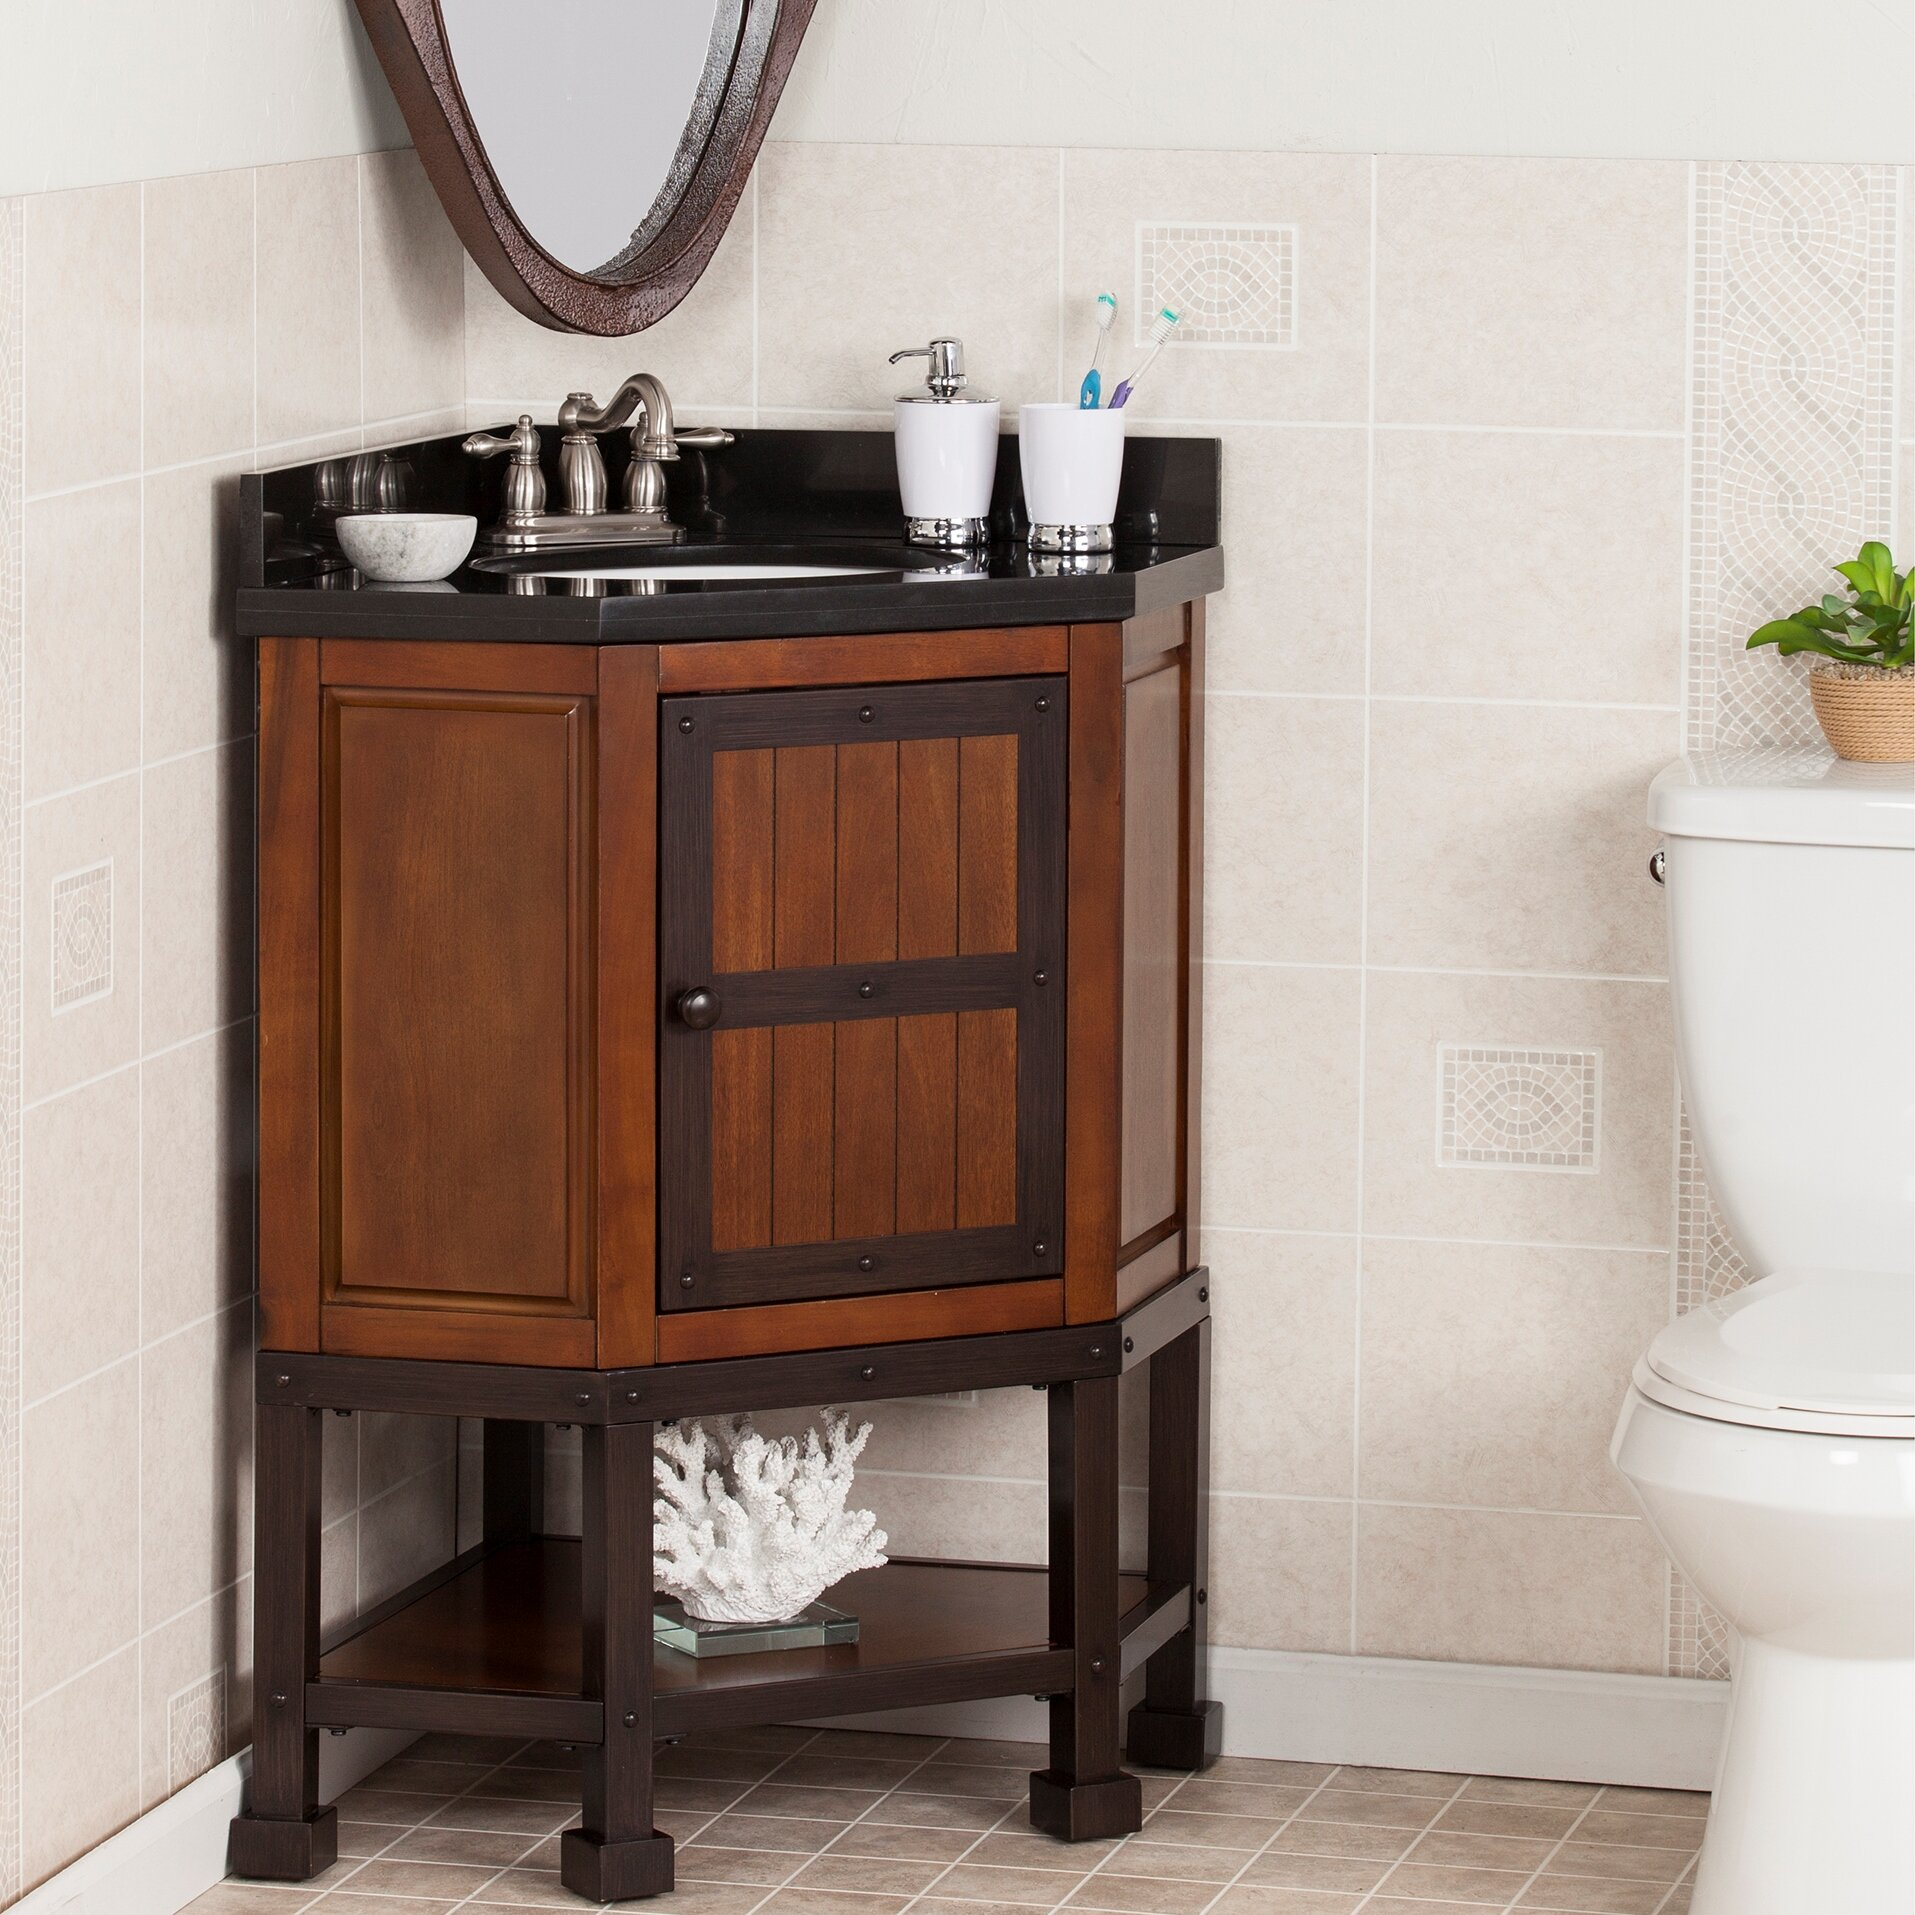 williston forge clarksburg 34 single corner bath vanity set wayfair rh wayfair com corner bathroom vanity with sink ideas corner bathroom vanity with 2 sinks